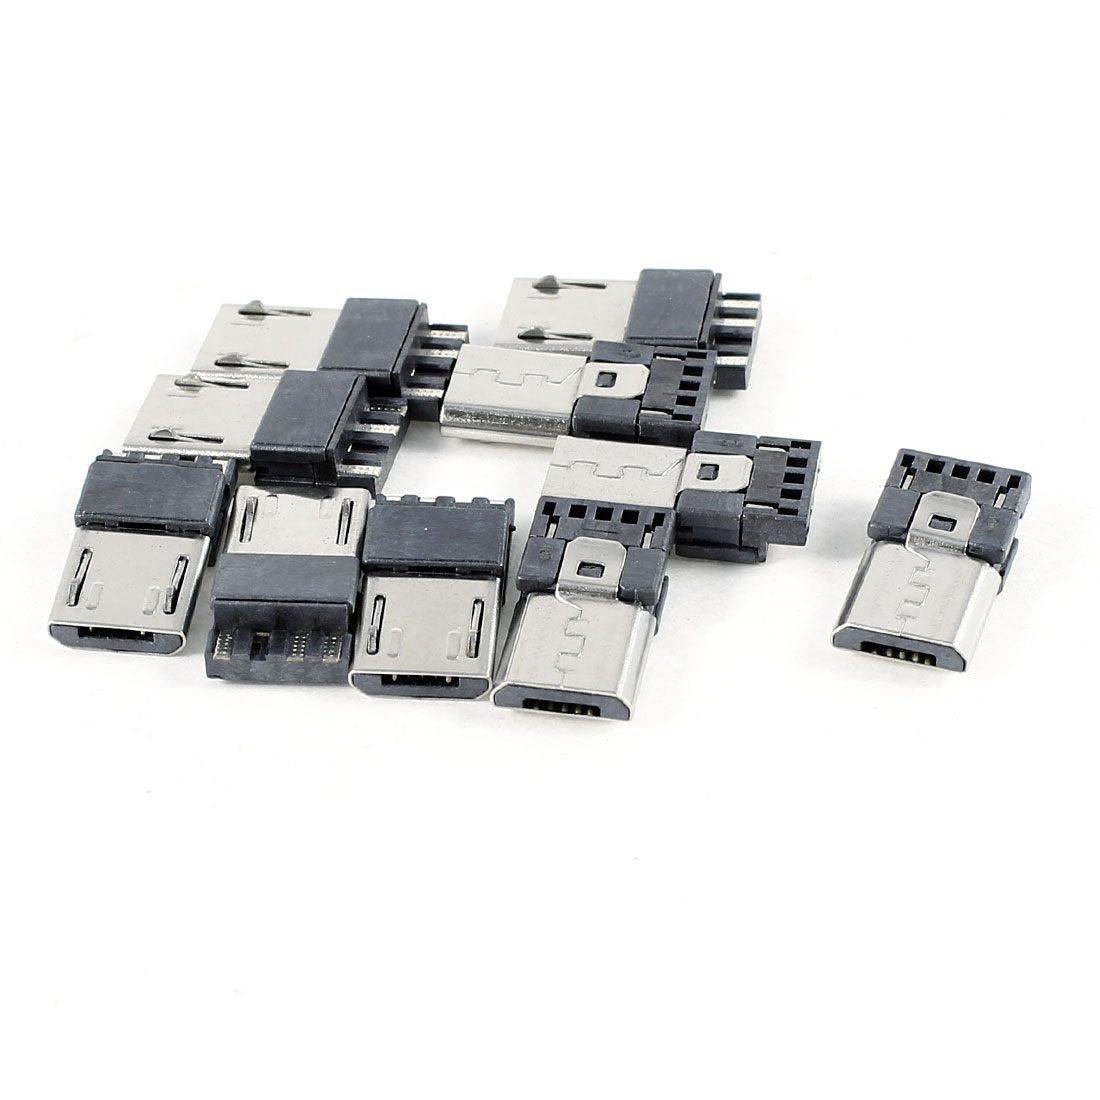 10 Pcs Micro USB 5 Pin Male B Type PCB Mounting Jack Port Socket